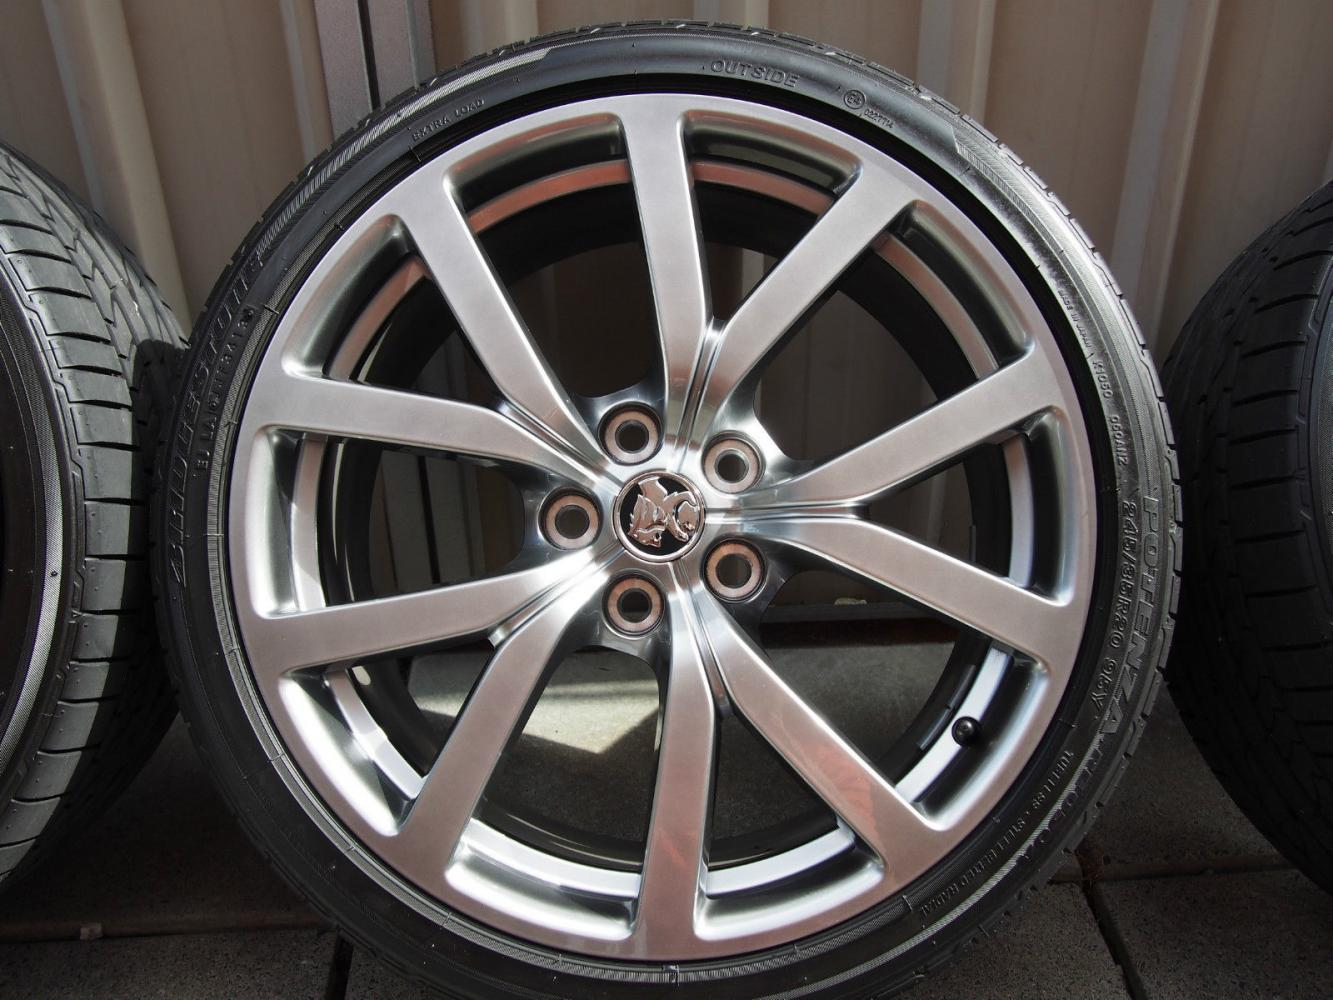 VIC] - Holden HSVi VF Commodore HF-20 Forged Alloy Wheels